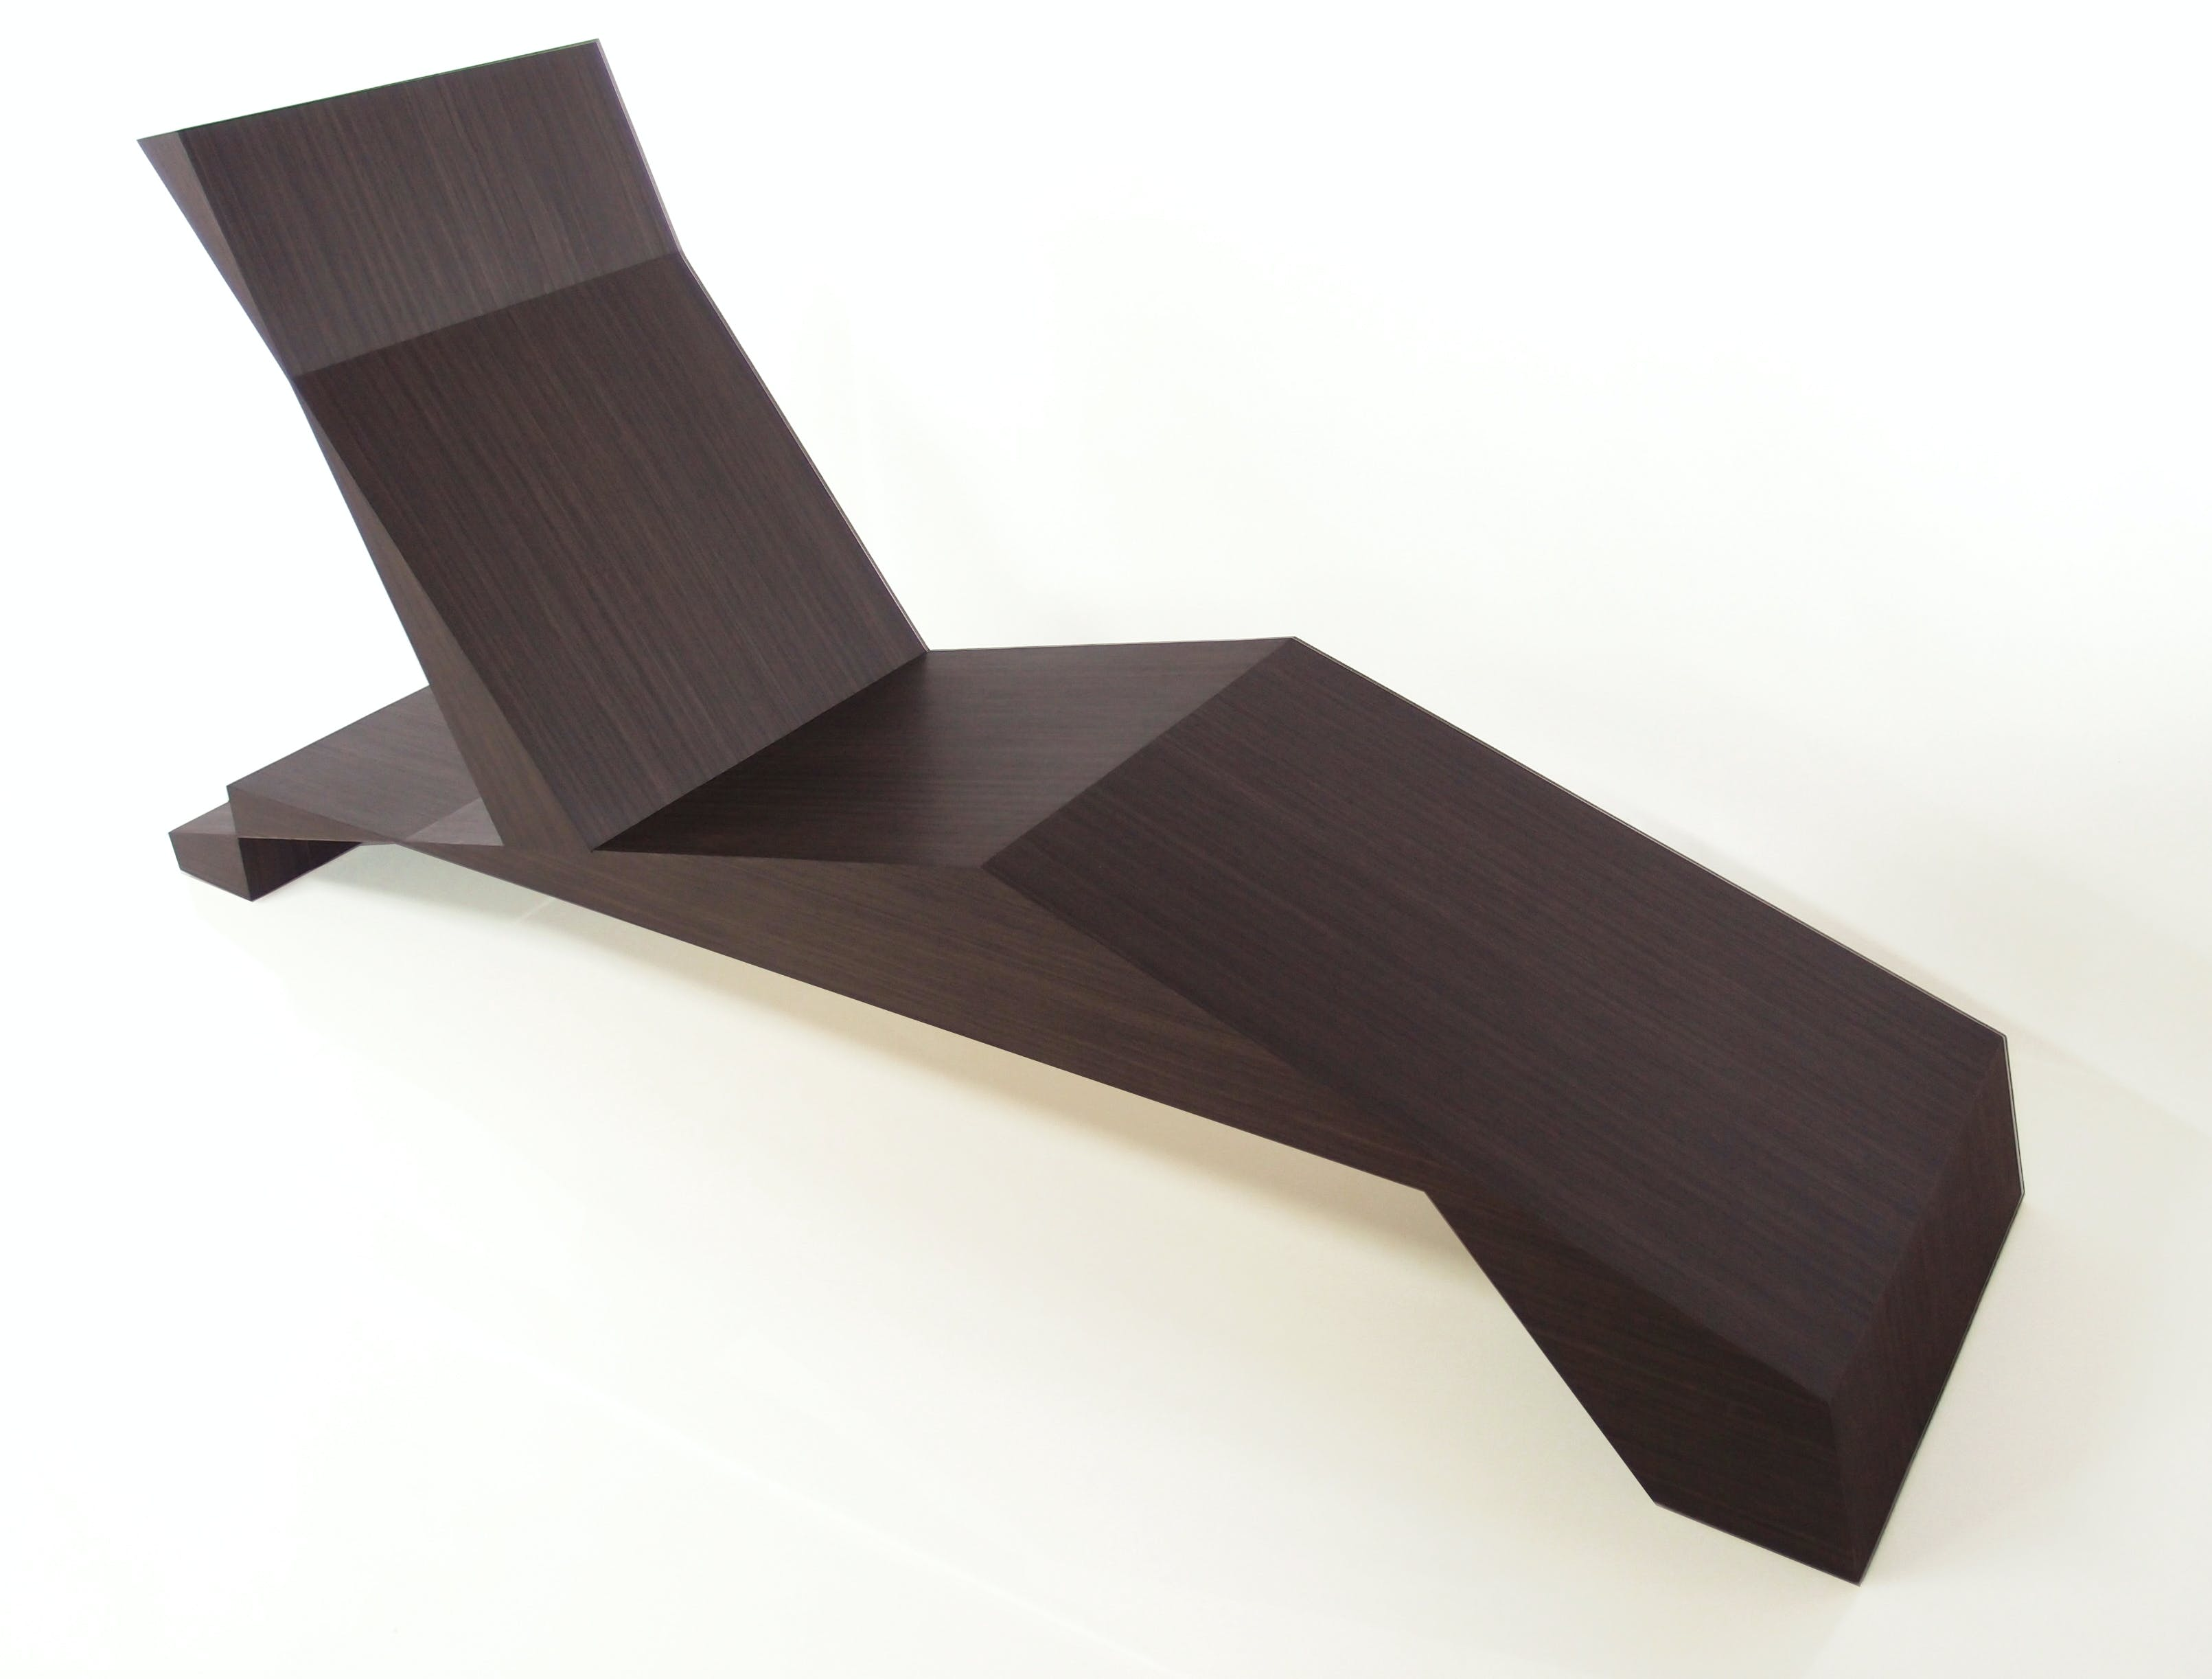 Stickfigure Chaise